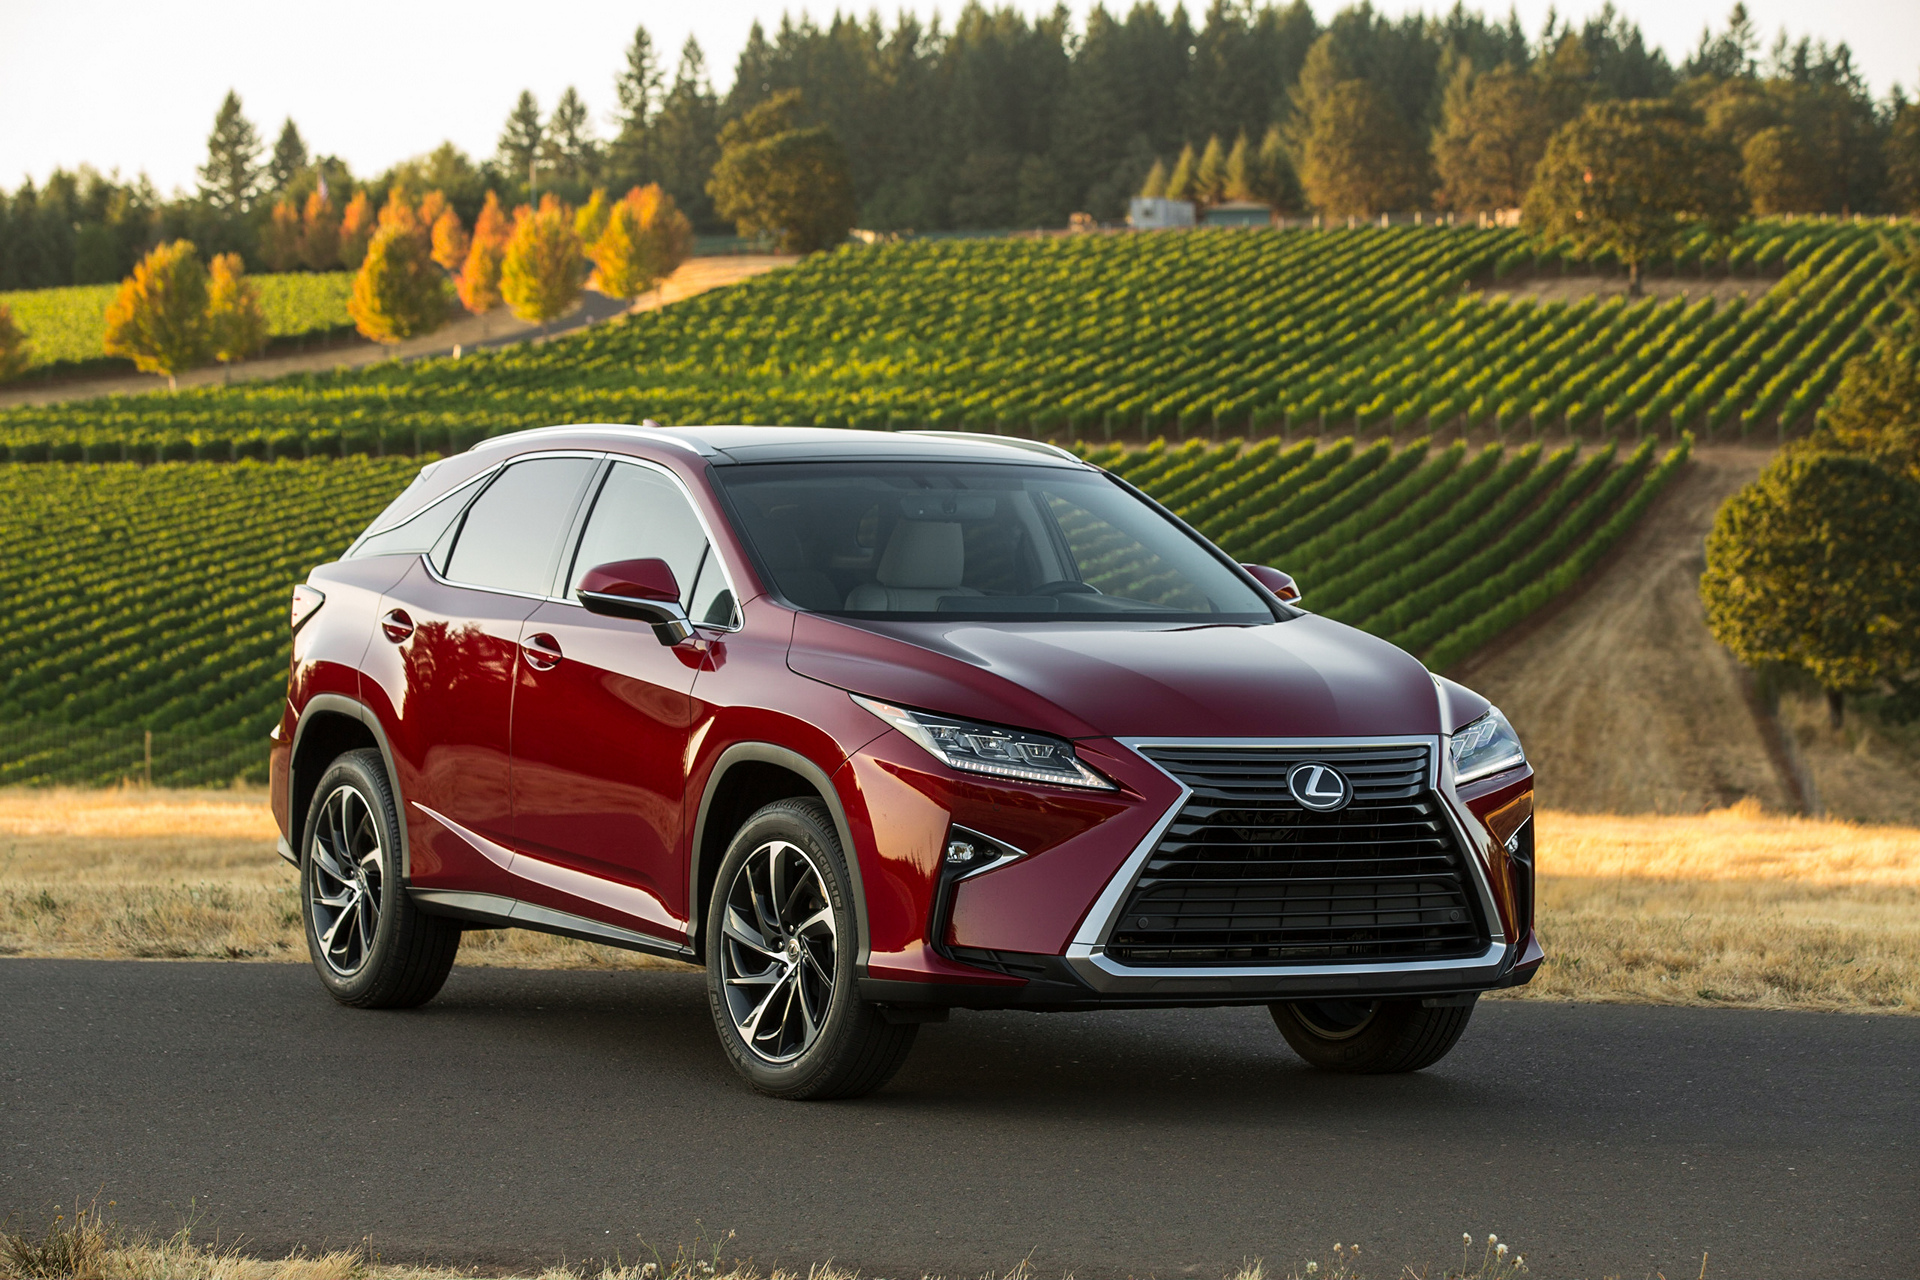 2016 Lexus RX 350 © Toyota Motor Corporation